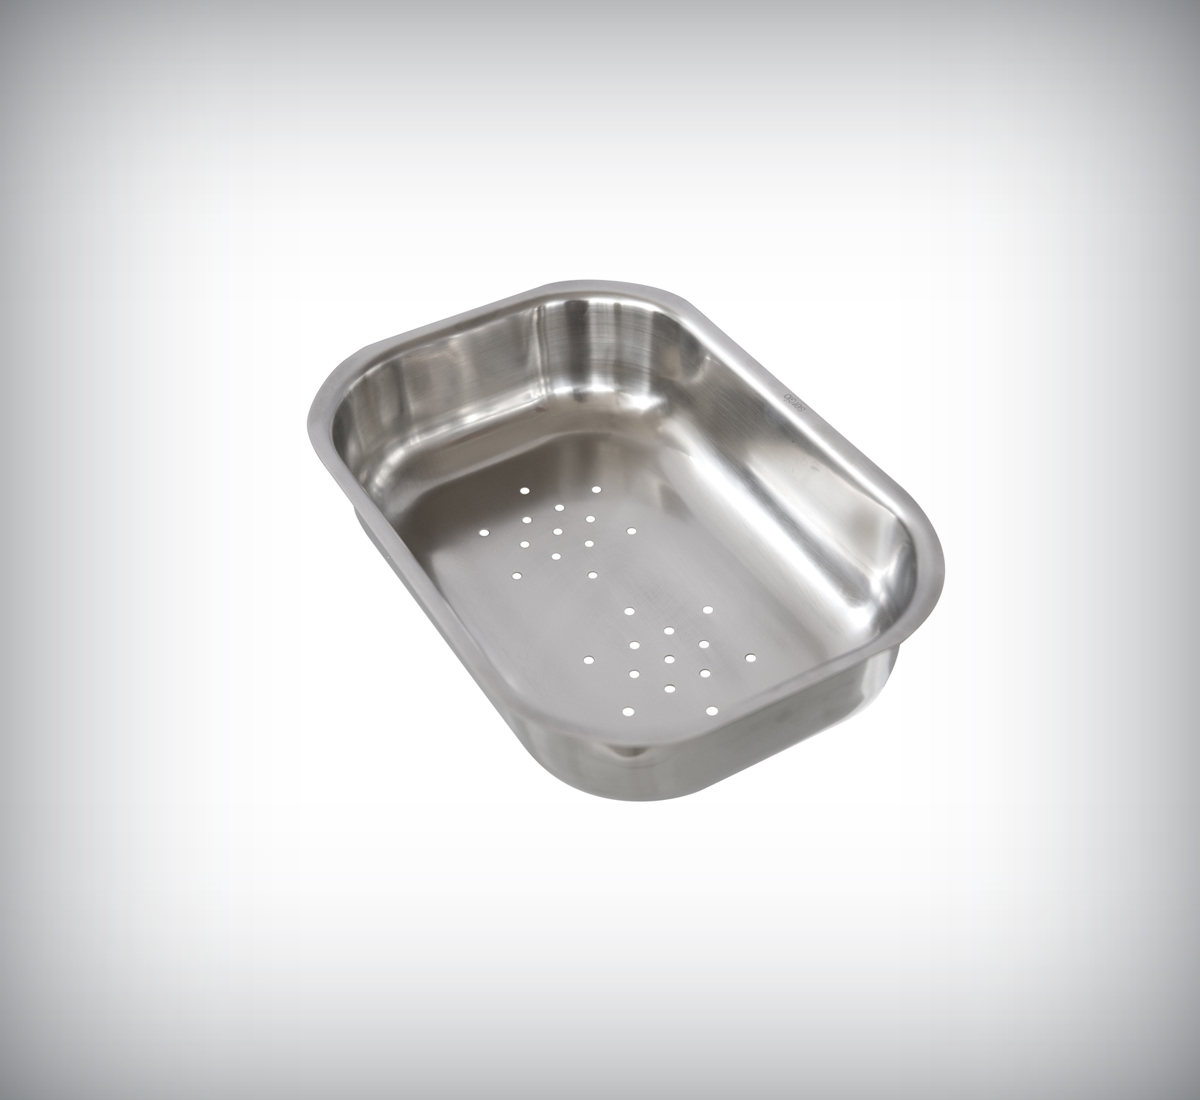 stainless steel colander ANSA-COL